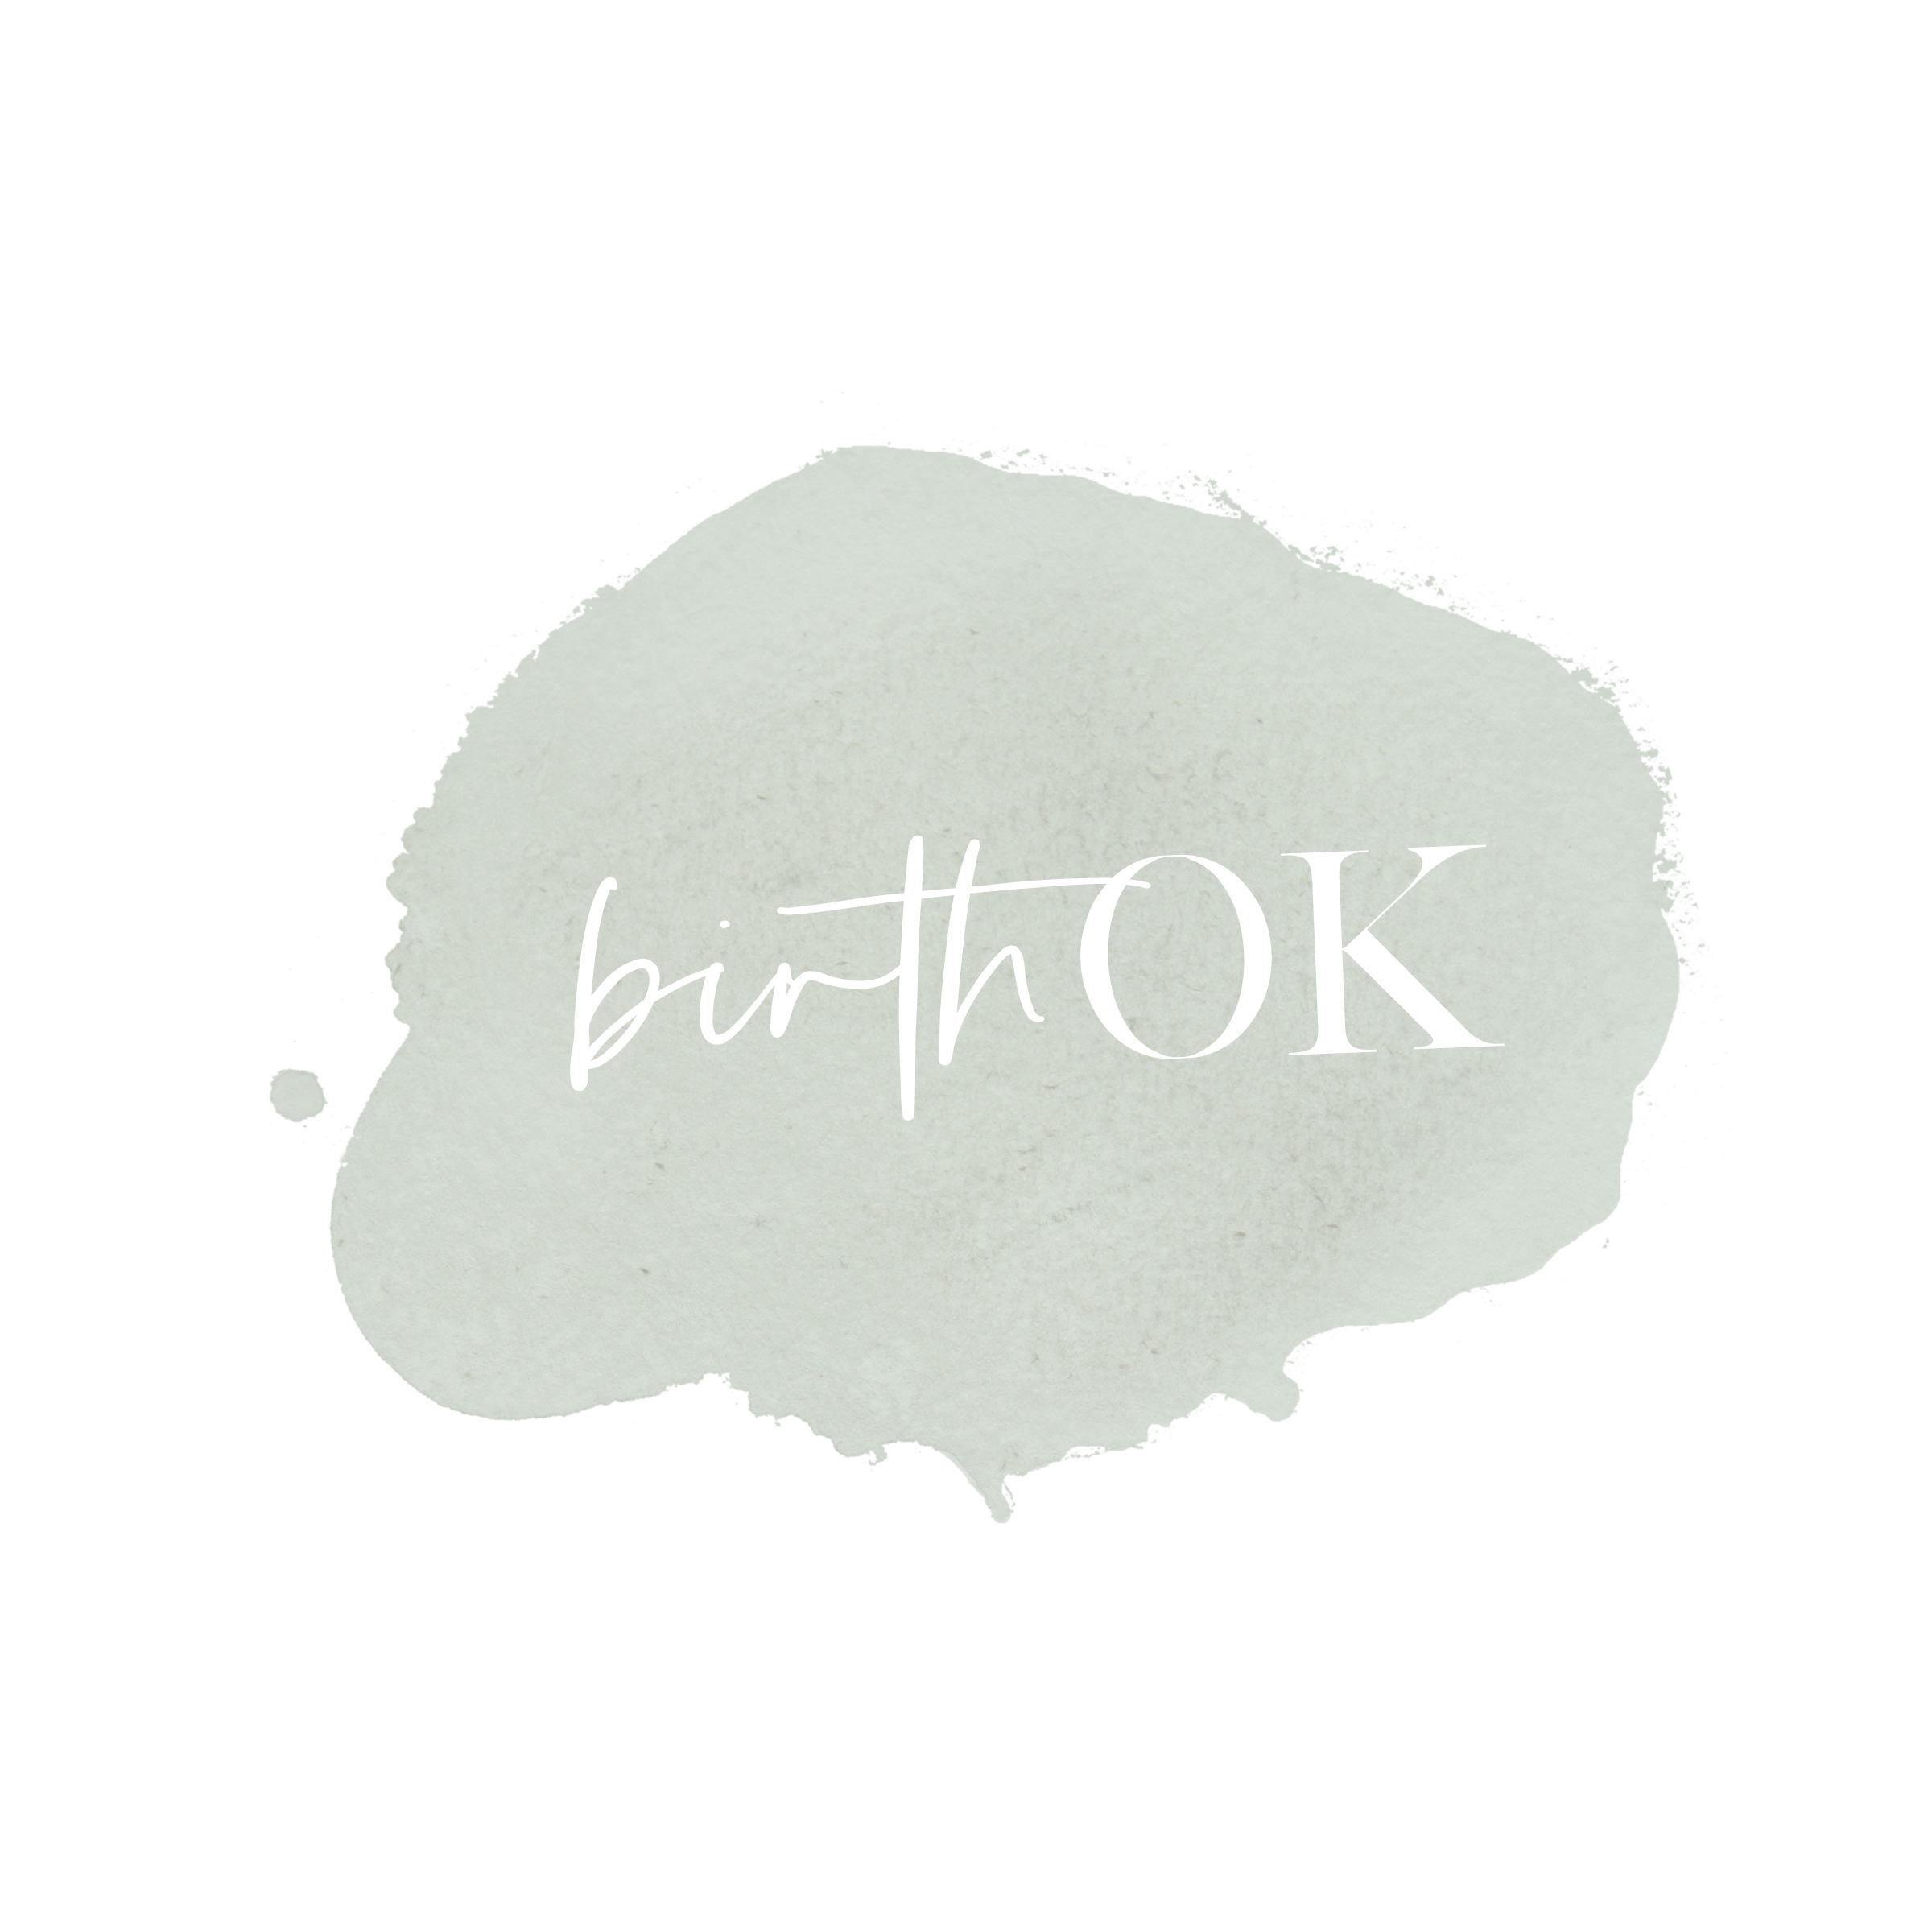 Birth-OK-Wellness-Natural-Family-Retail-Oklahoma-directory.jpg